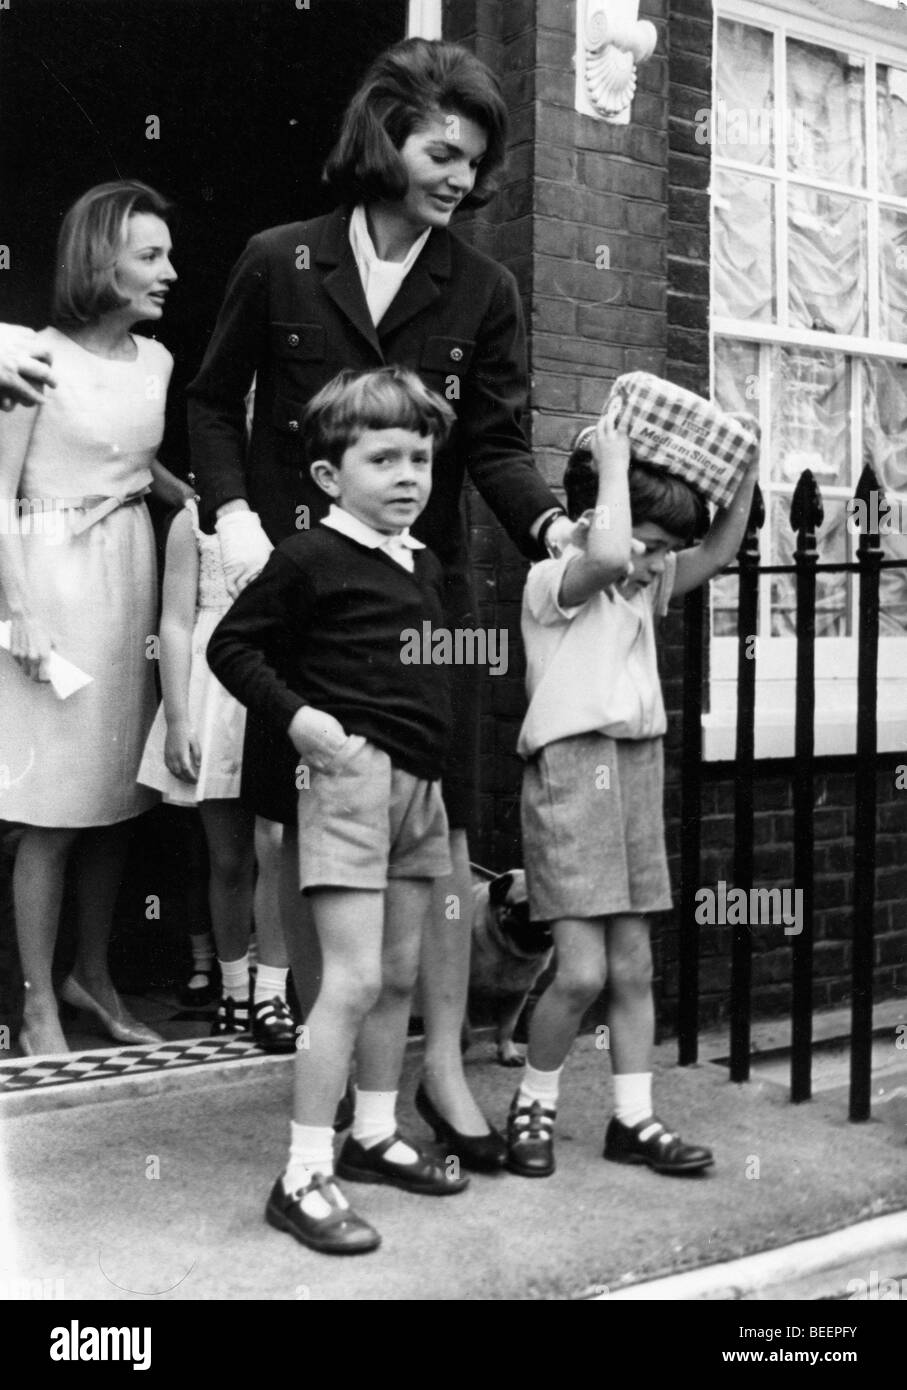 Jackie Kennedy In London With Children Stock Photo